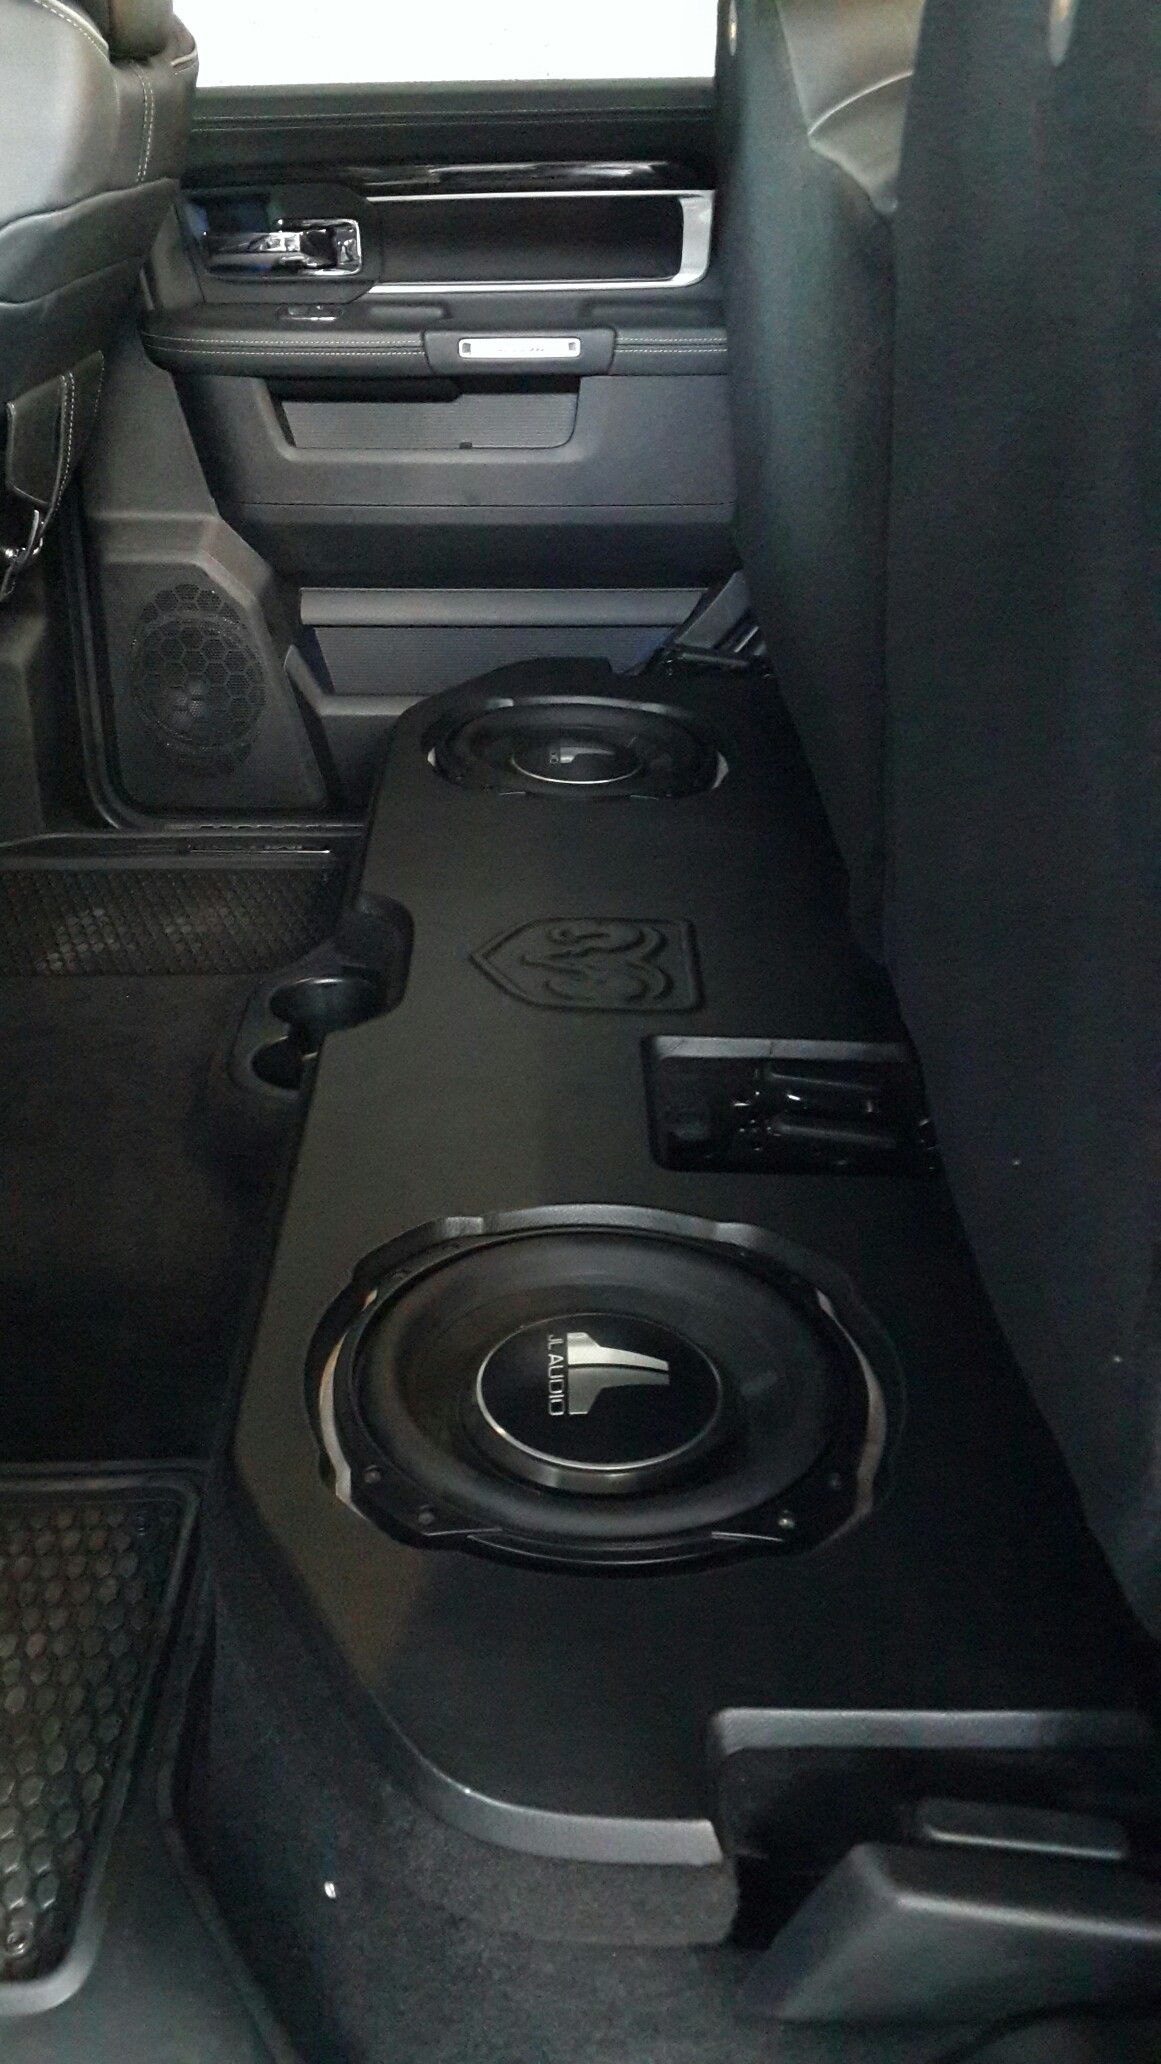 Pin by Kelley Smith on Installs | Pinterest | Car audio, Car audio ...